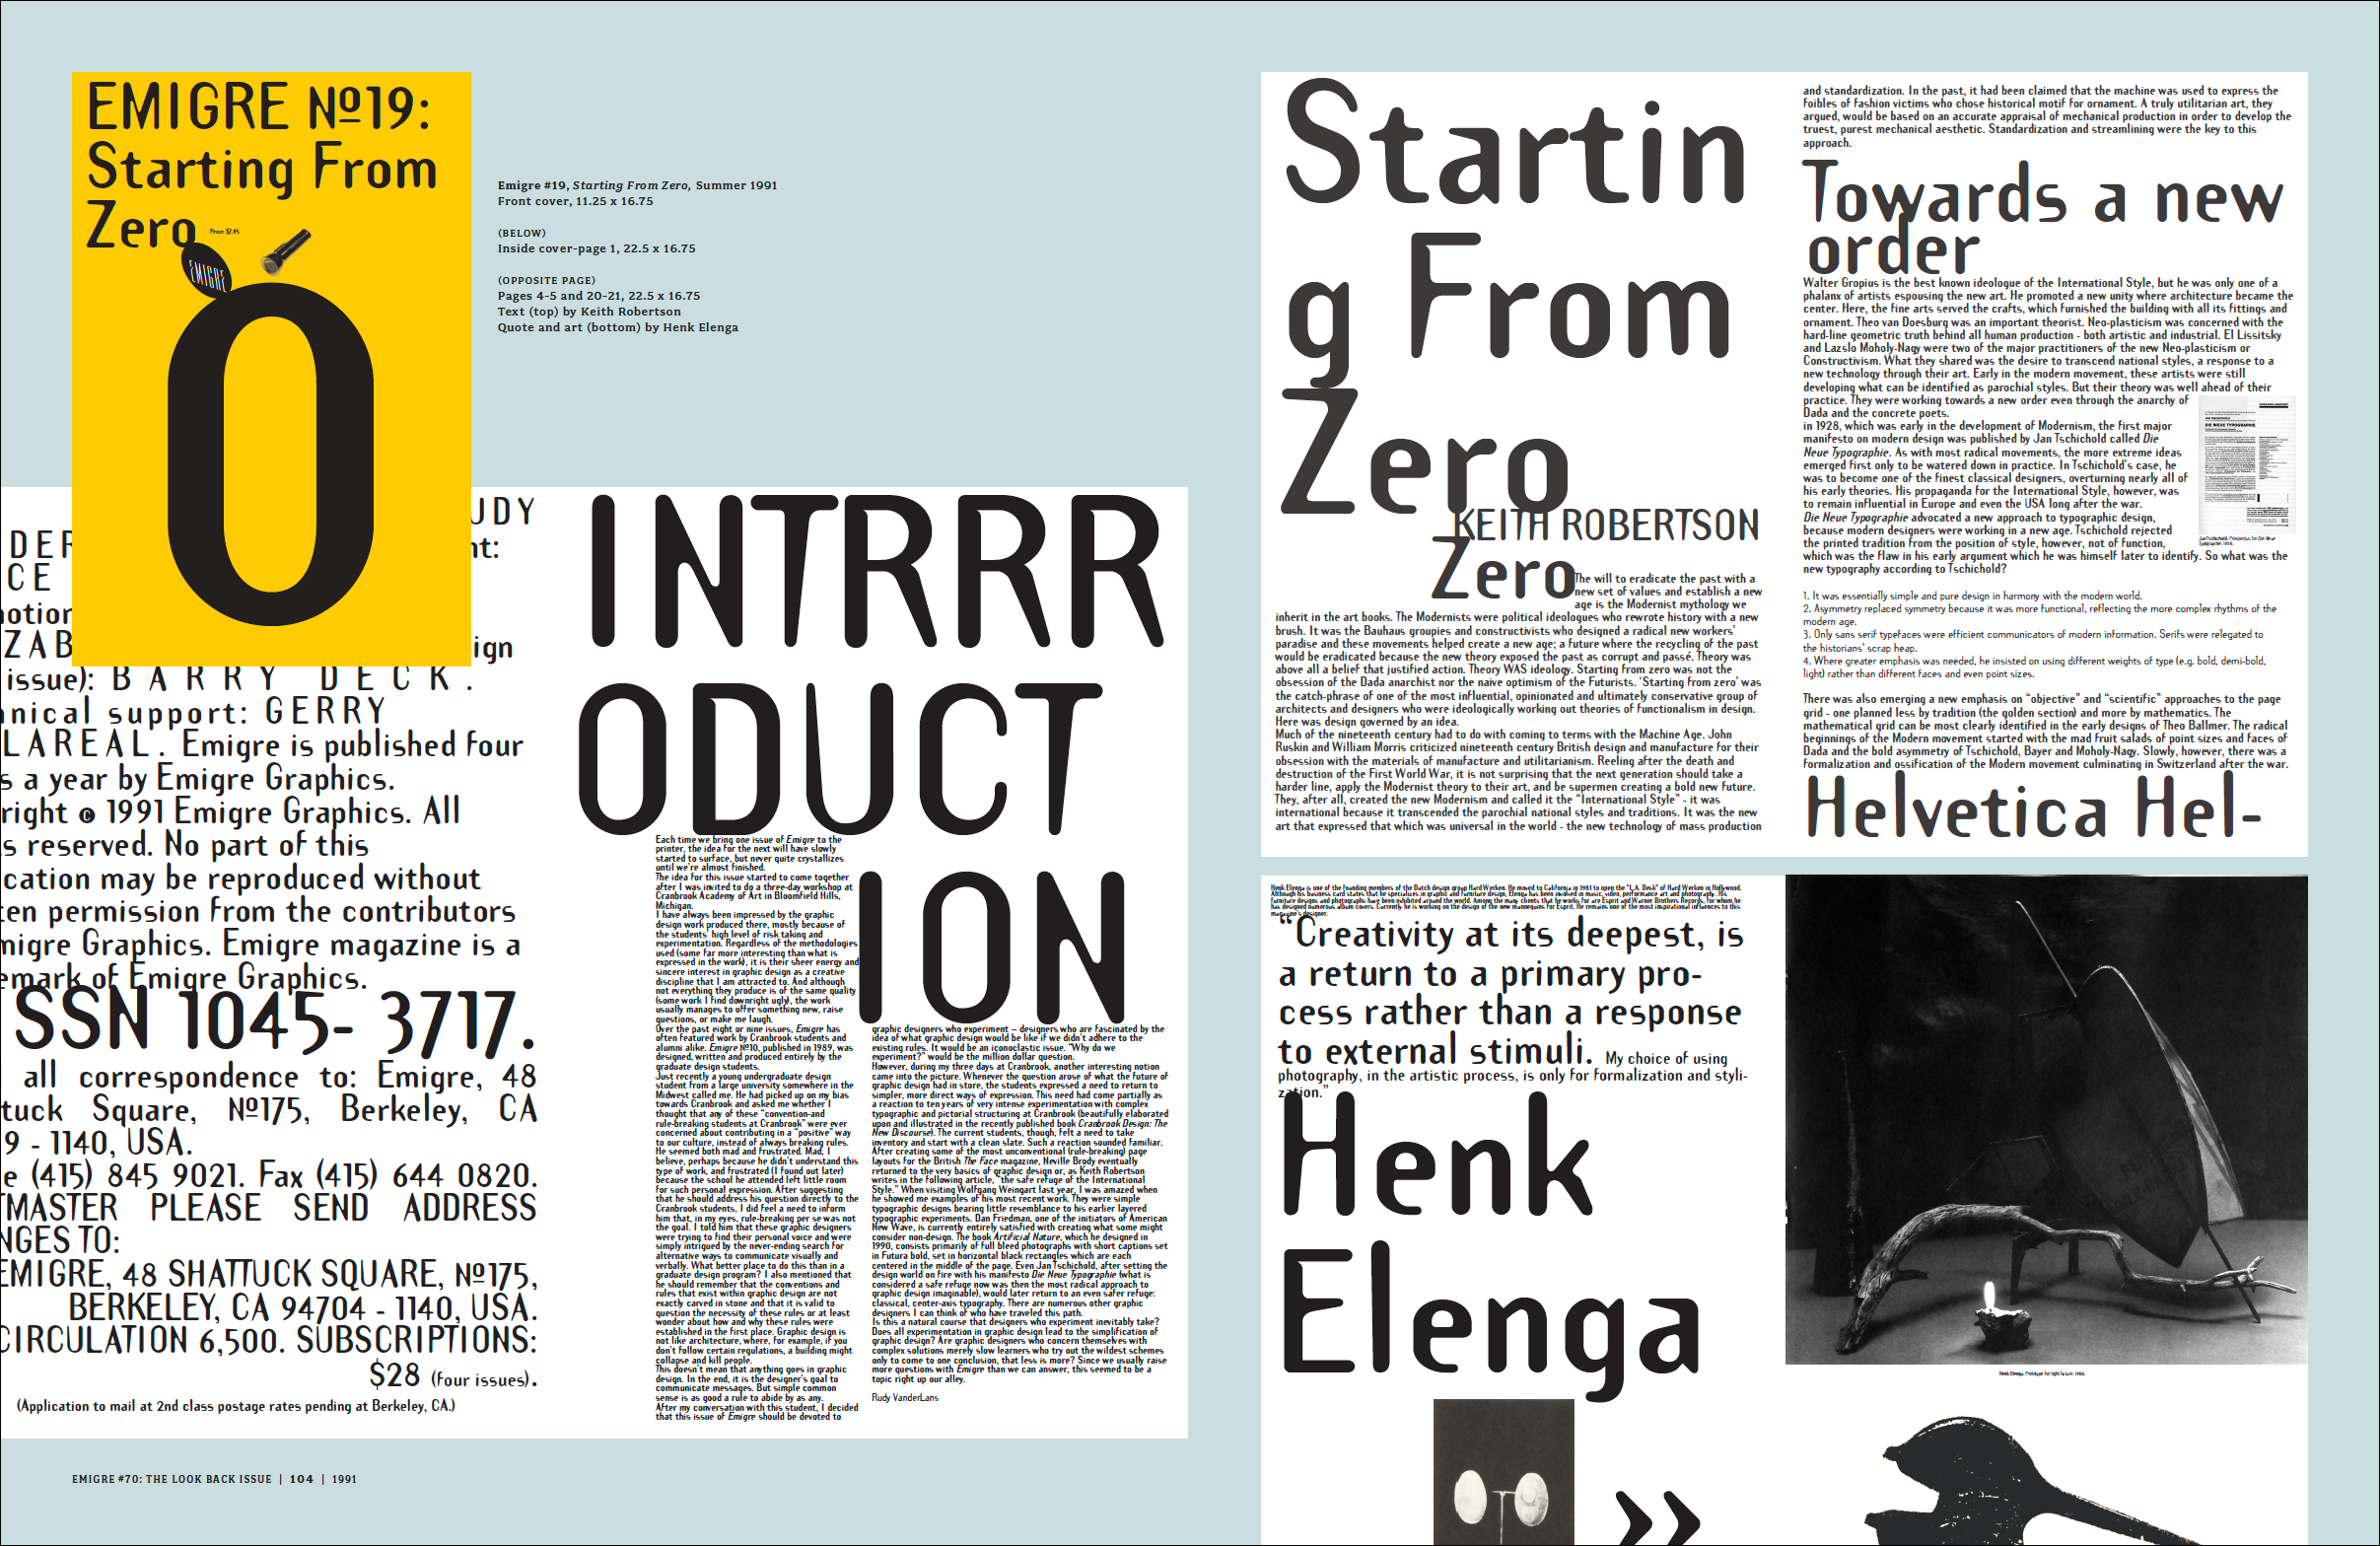 Emigre No  70: The Look Back Issue - Selections from Emigre magazine